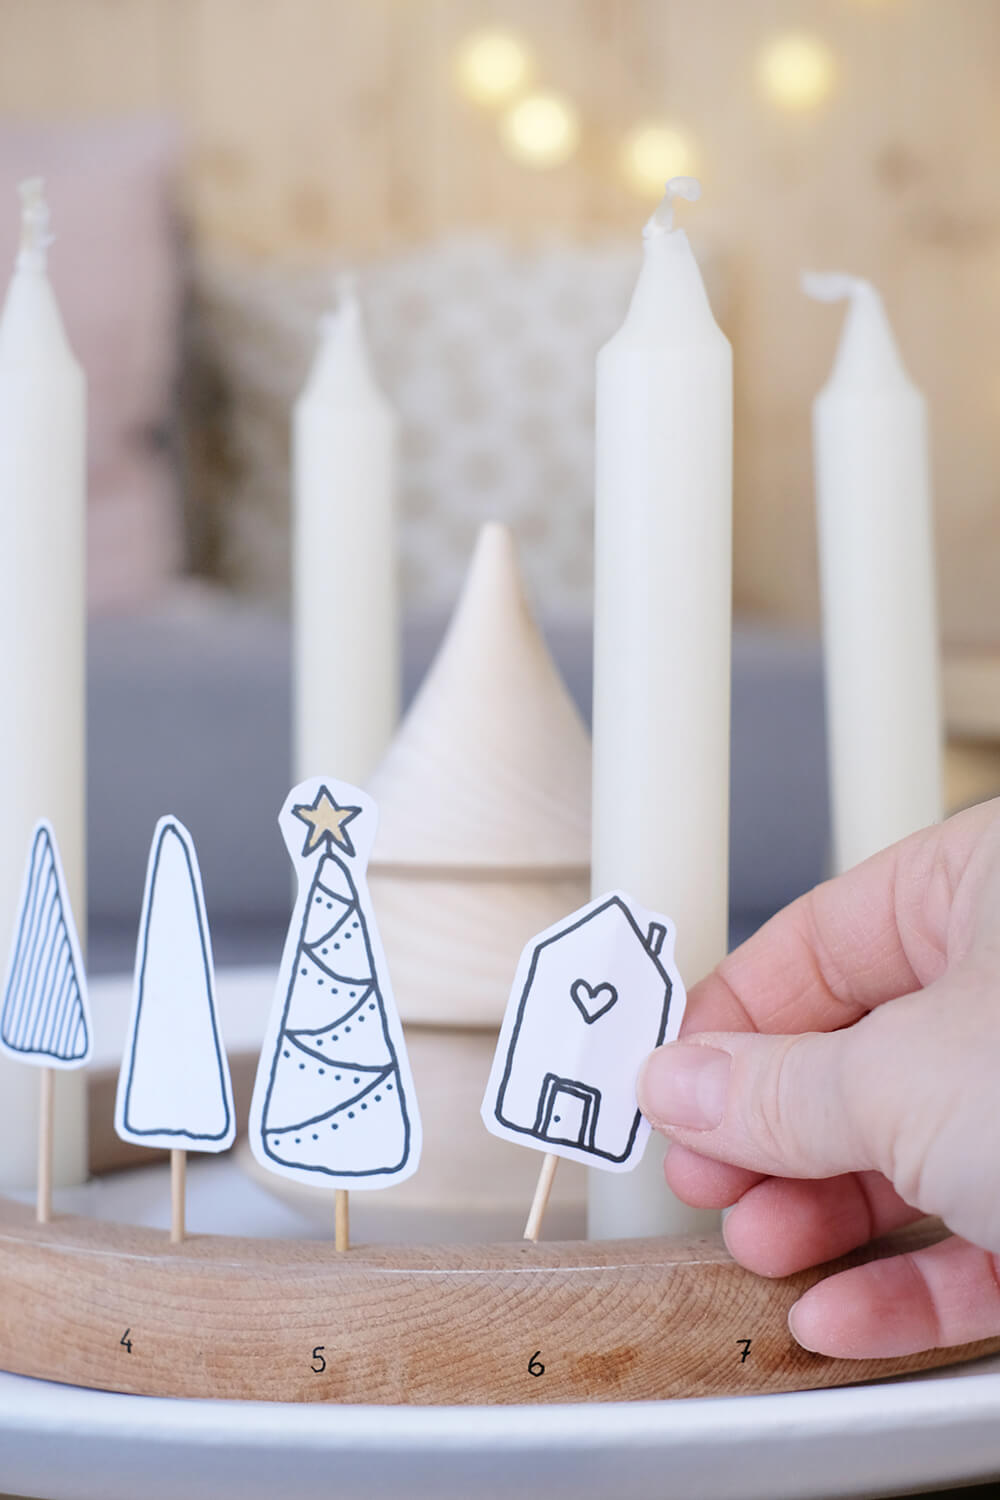 DIY Adventskranz und Adventskalender im schlichten Stil aus Stickrahmen - Gingered Things